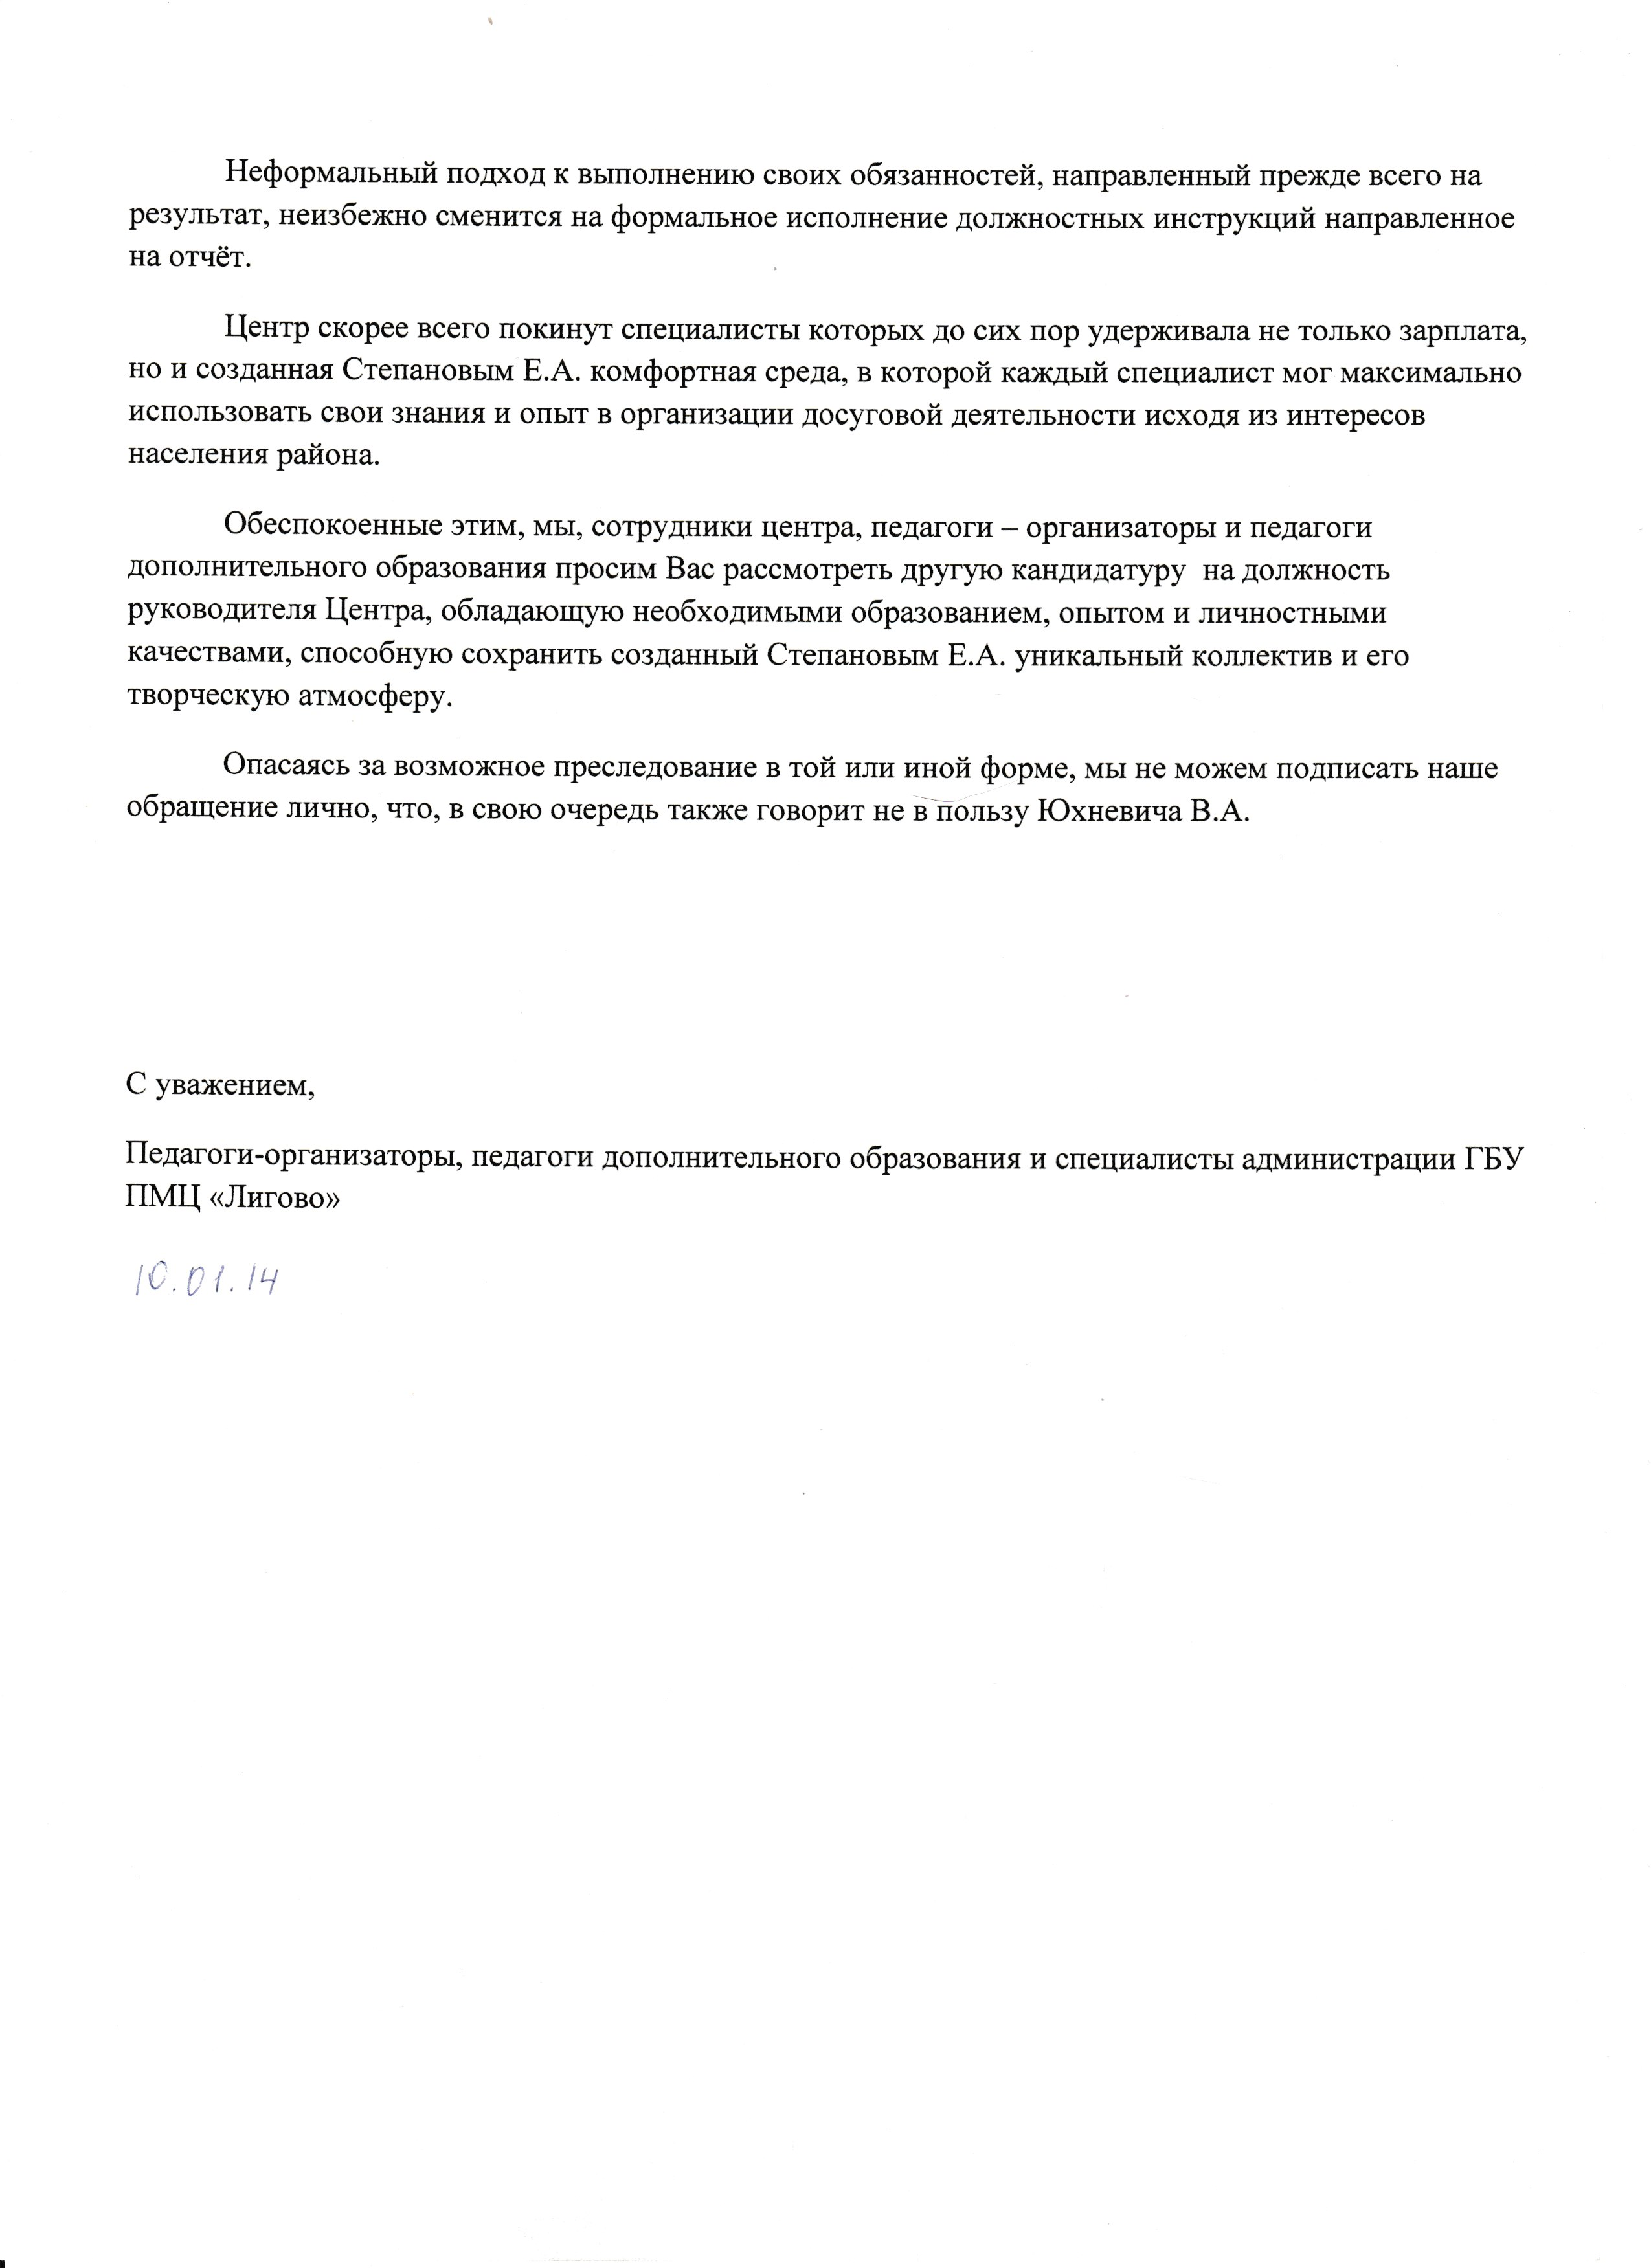 ligovo_uhnevich_letter_3